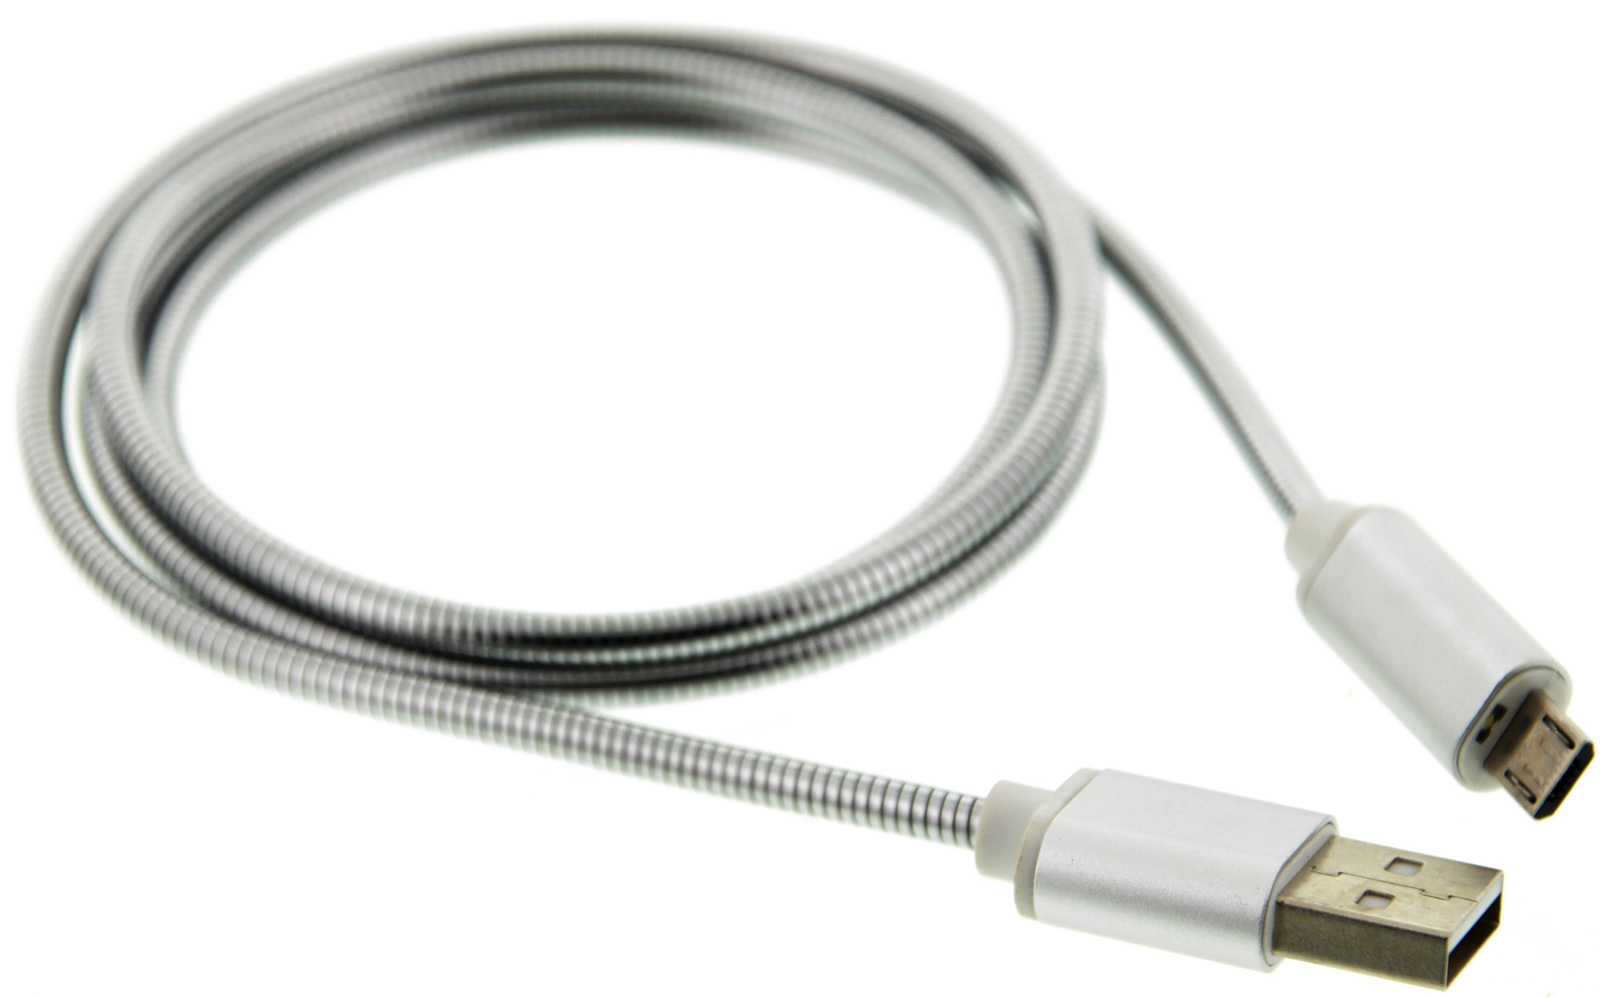 TouchLight Charge: 1m USB Charging Cable - Micro USB (Silver) image